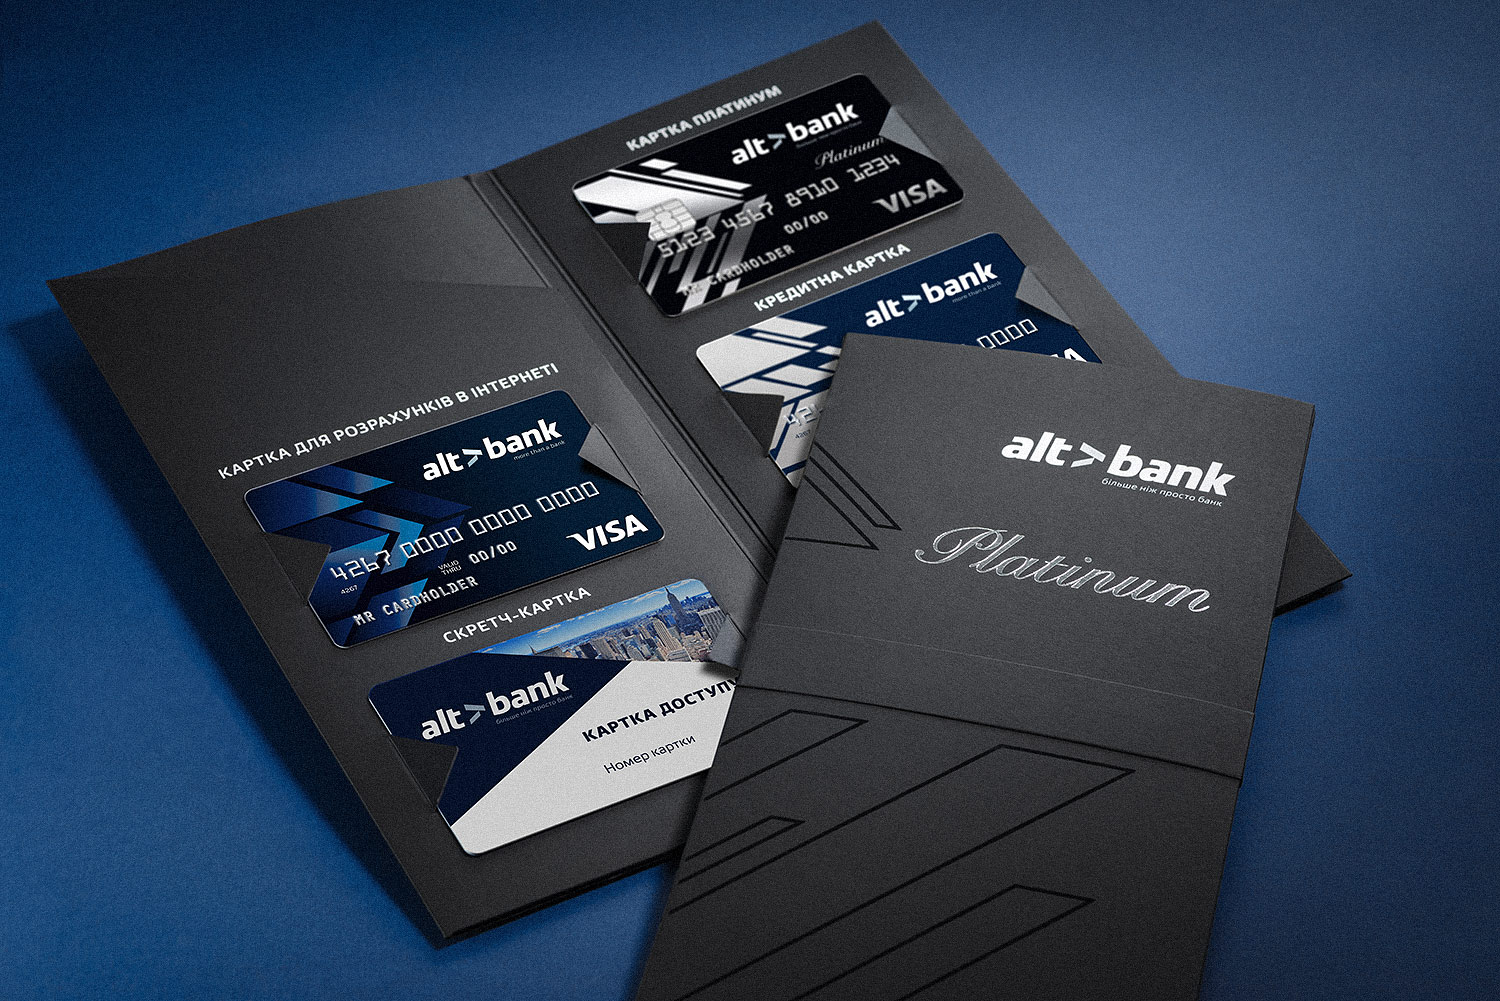 Platinum holder for Altbank payment cards. Stylish design and scheme of cardboard packaging for plastic cards.